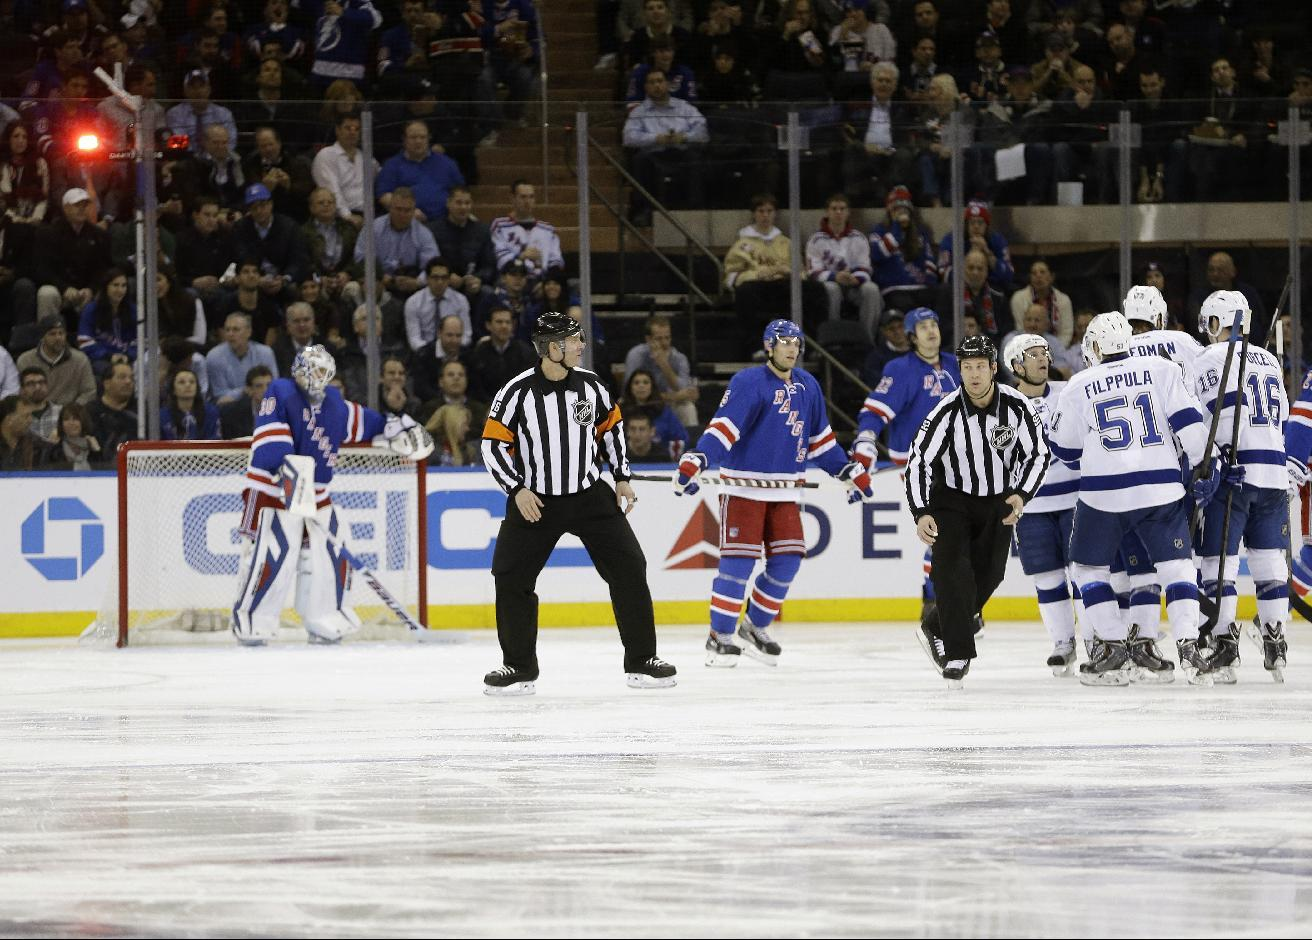 Tampa Bay Lightning celebrates a goal by Victor Hedman as New York Rangers goalie Henrik Lundqvist (30) reacts during the second period of an NHL hockey game, Tuesday, Jan. 14, 2014, in New York